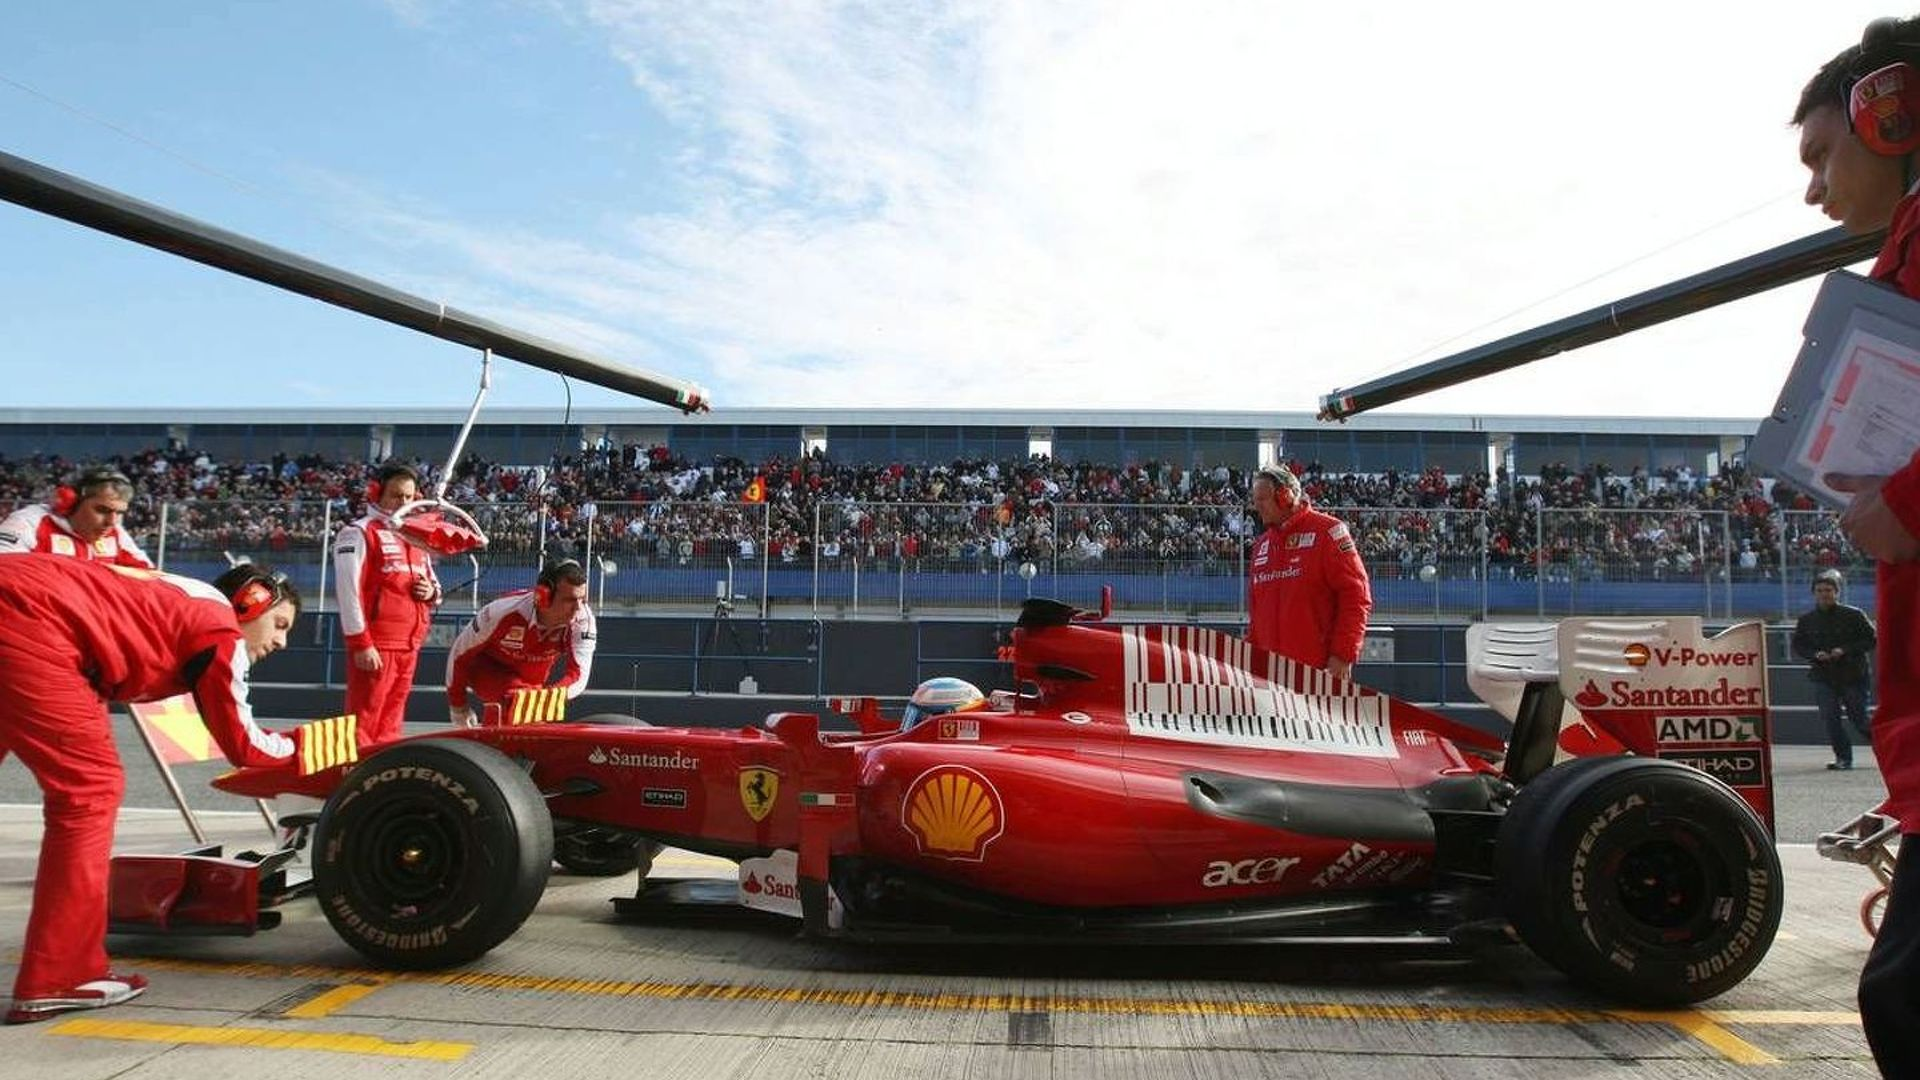 Ferrari is 'best car' of Alonso's career